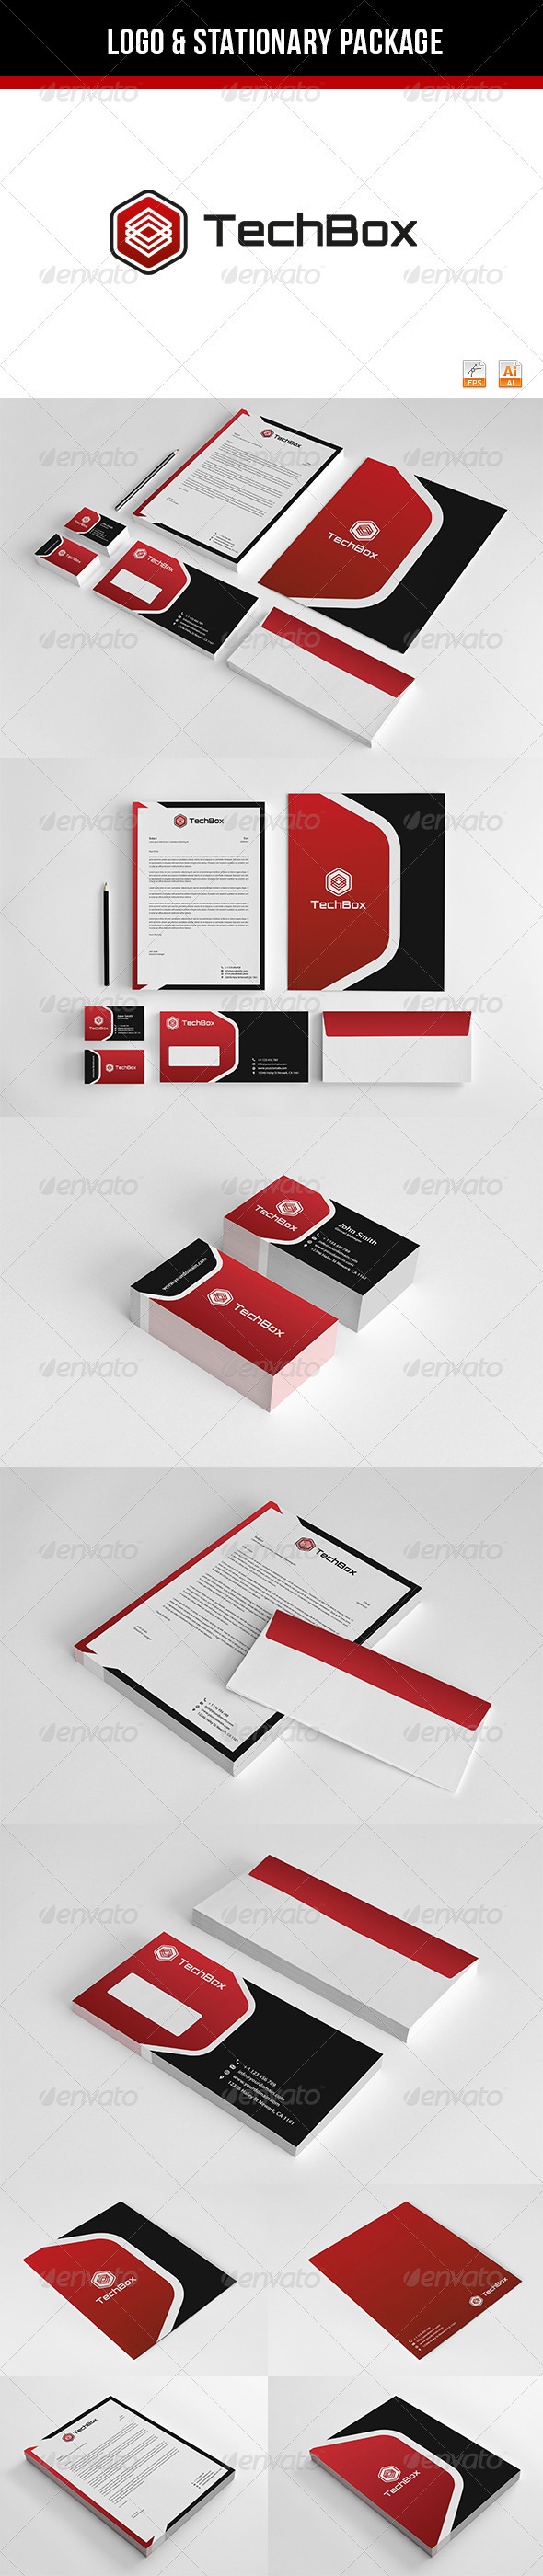 GraphicRiver TechBox Corporate Identity 3423732